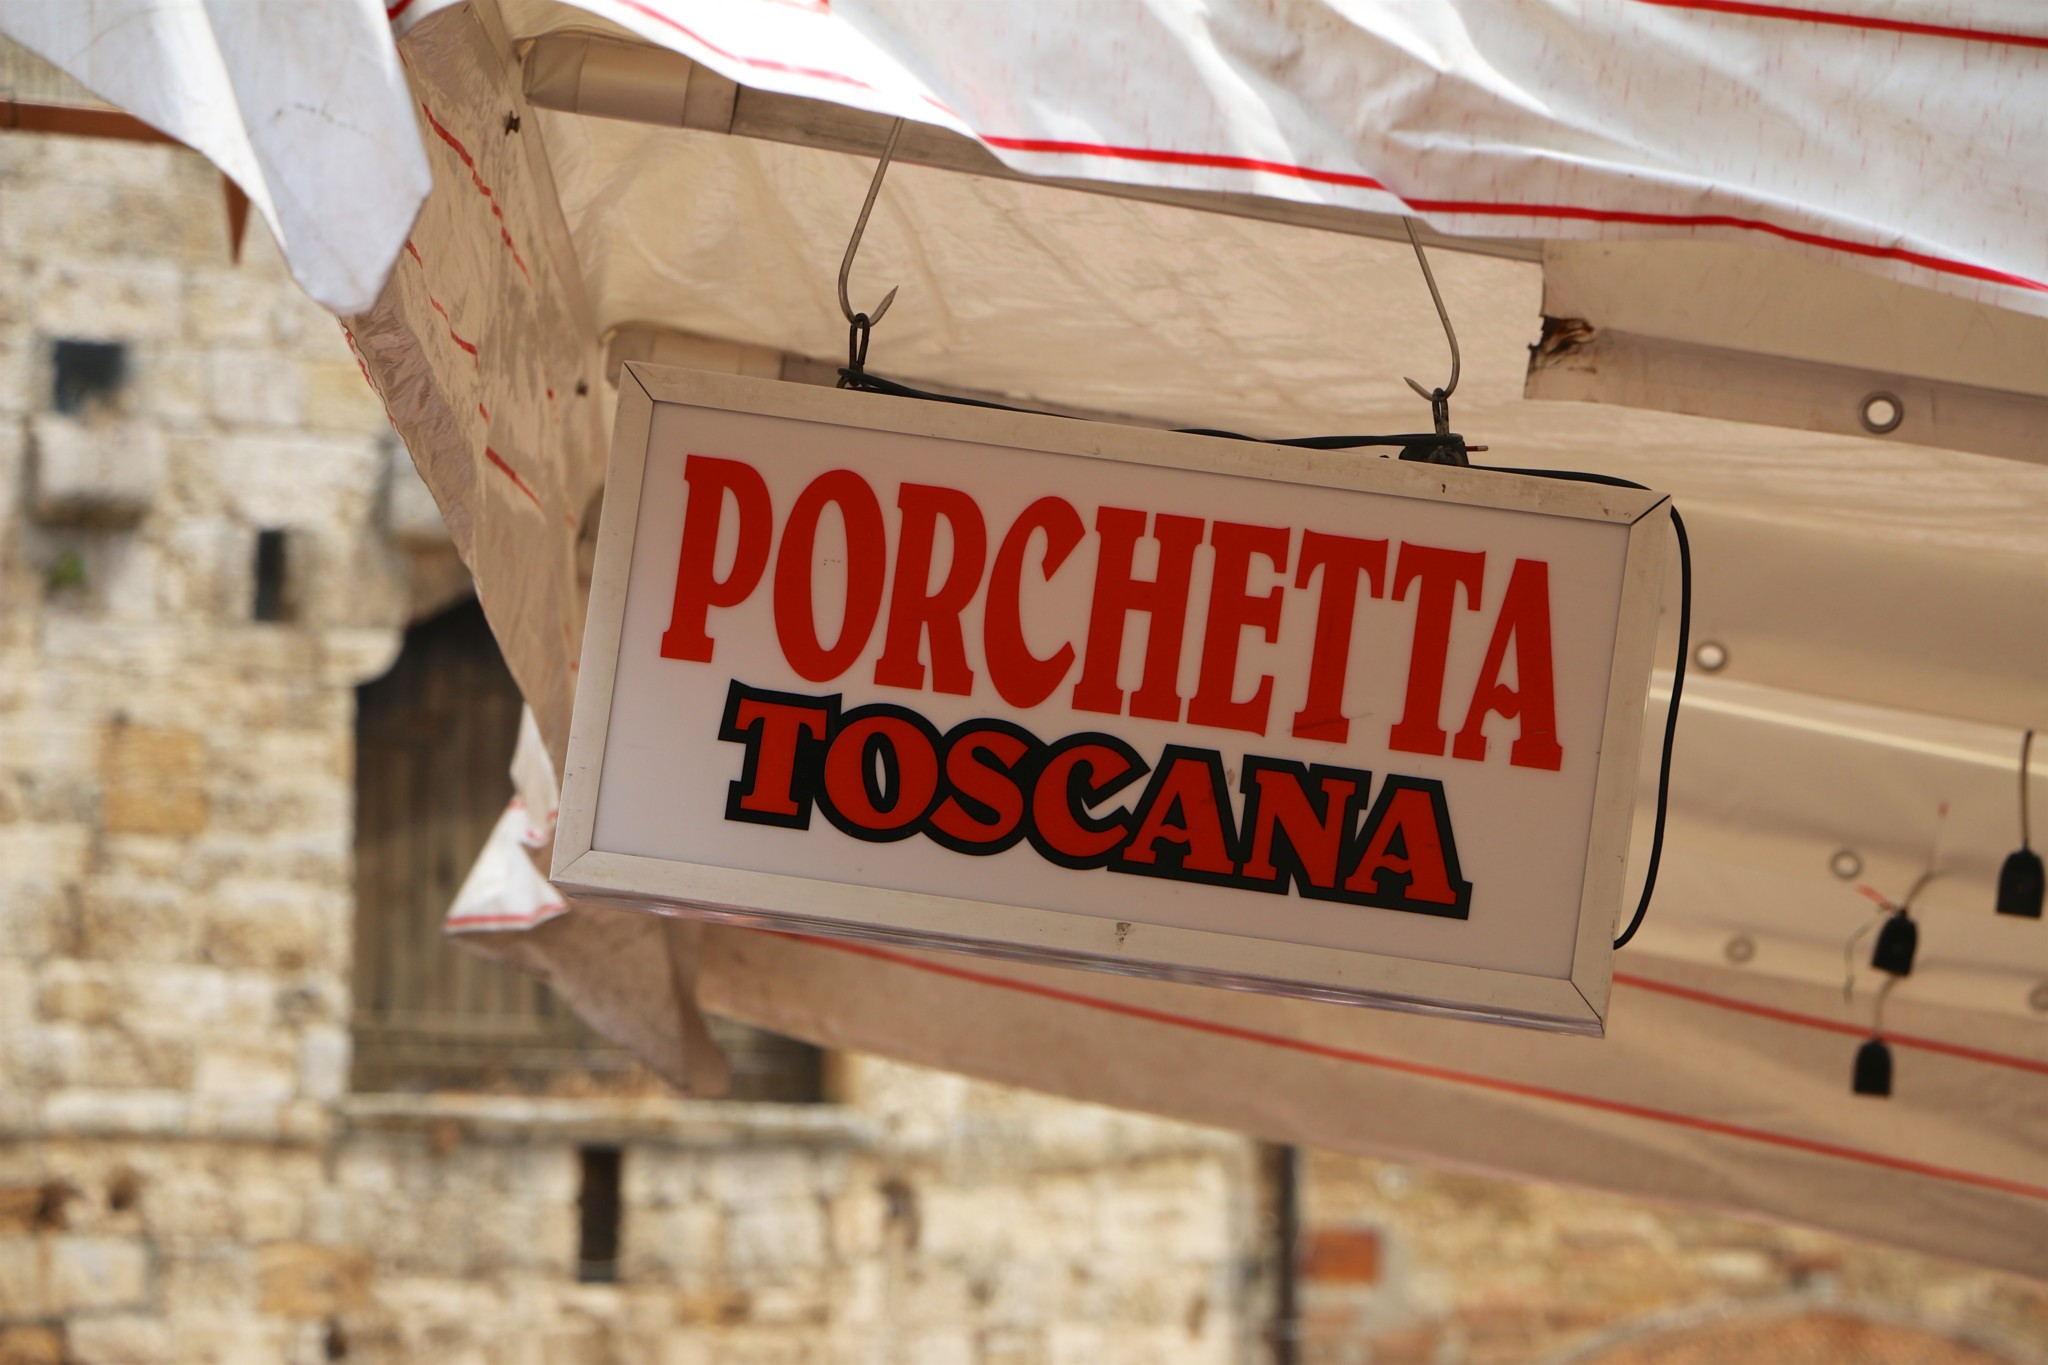 The Italian Porchetta Sandwich